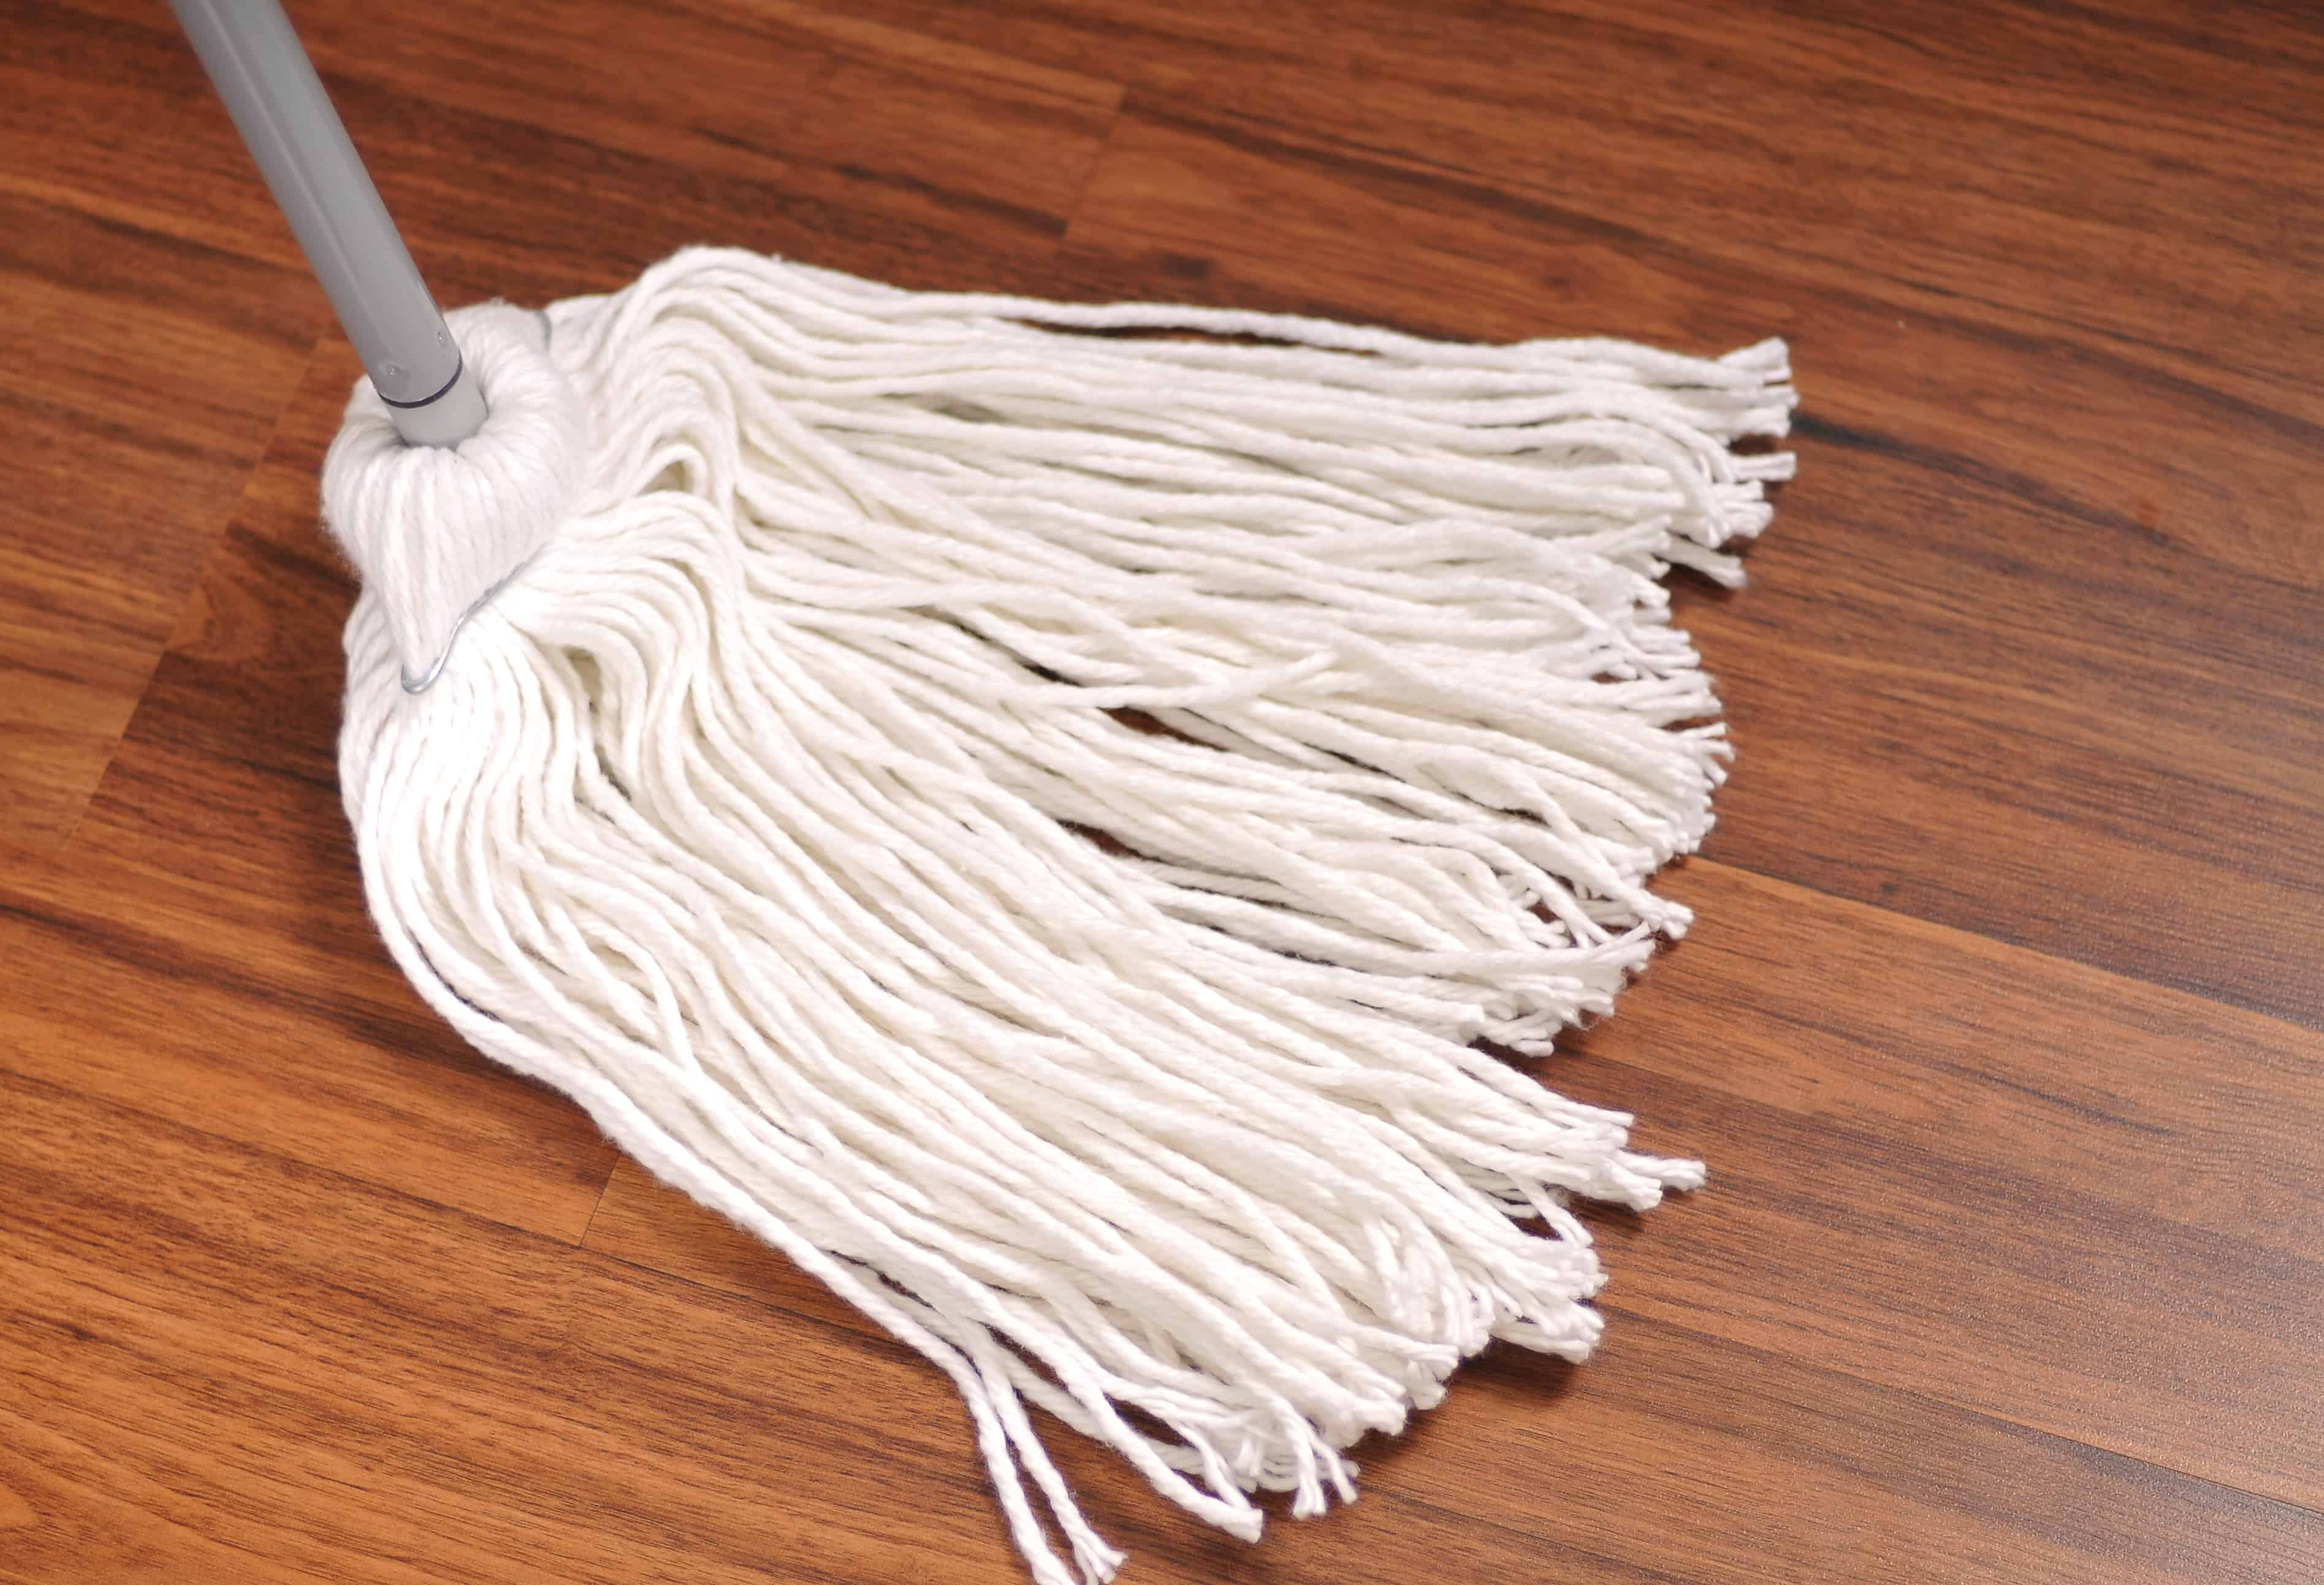 wood blog tag archives floors signature floor mop clean hardwood